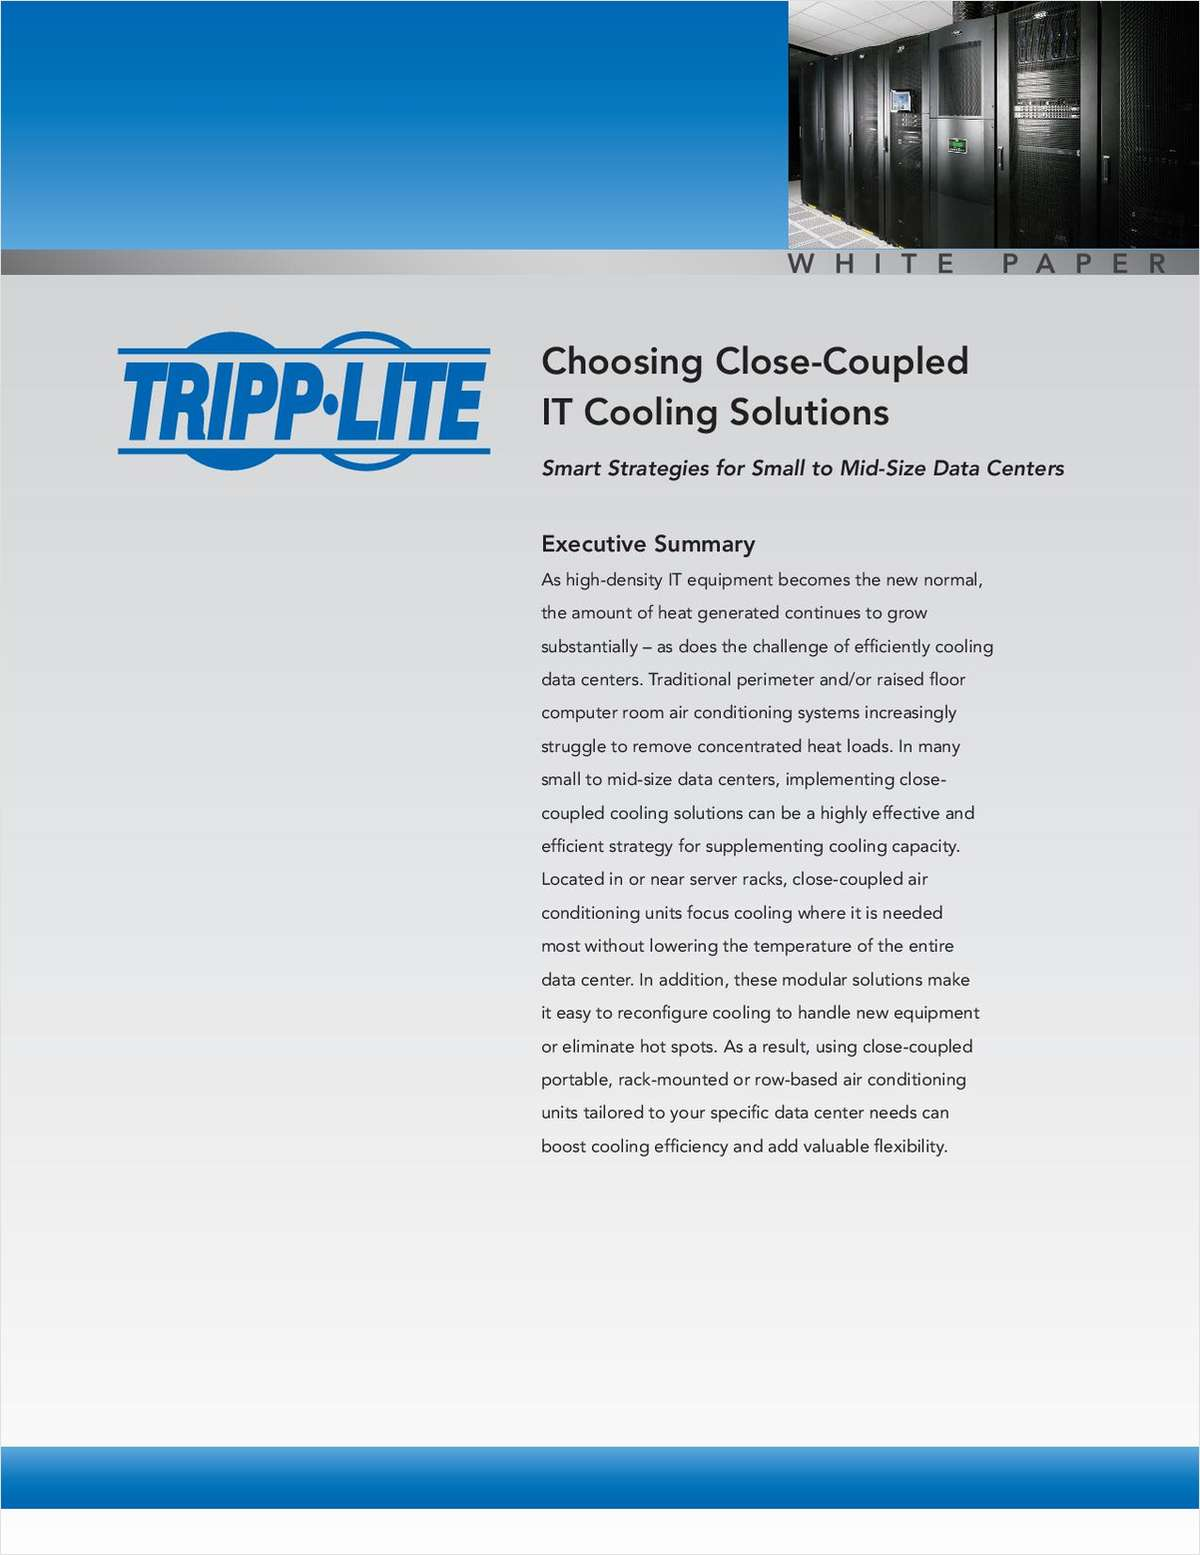 Choosing Close-Coupled IT Cooling Solutions